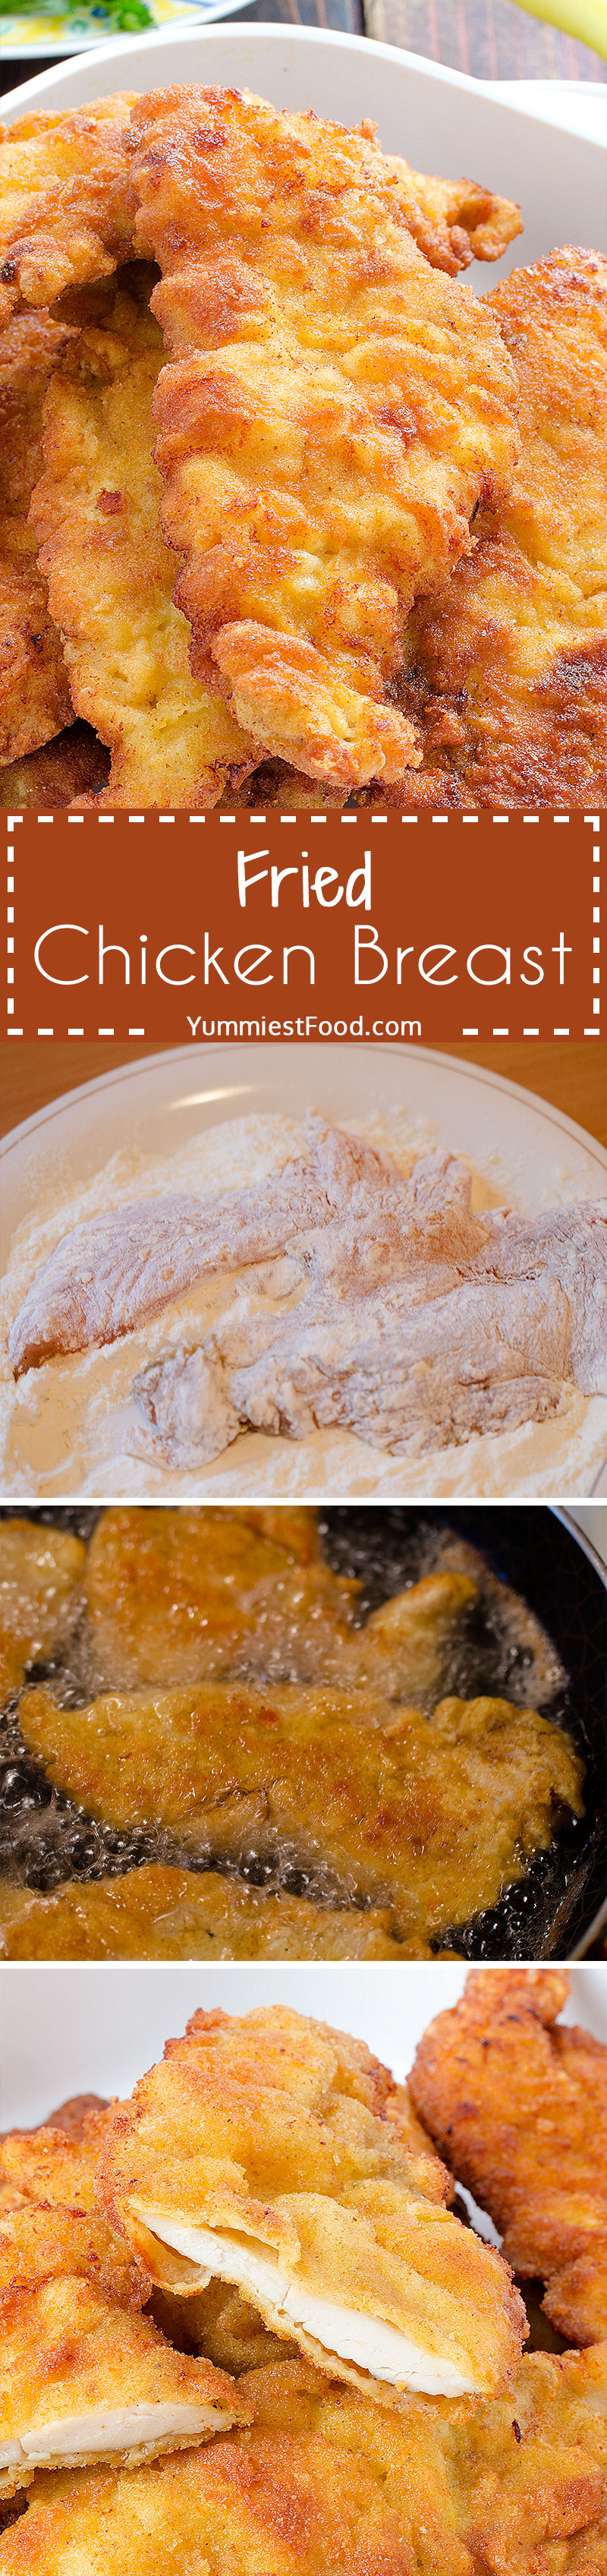 Fried chicken breast recipe from yummiest food cookbook fried chicken breast very interesting and easy way of preparing chicken breast and very forumfinder Images